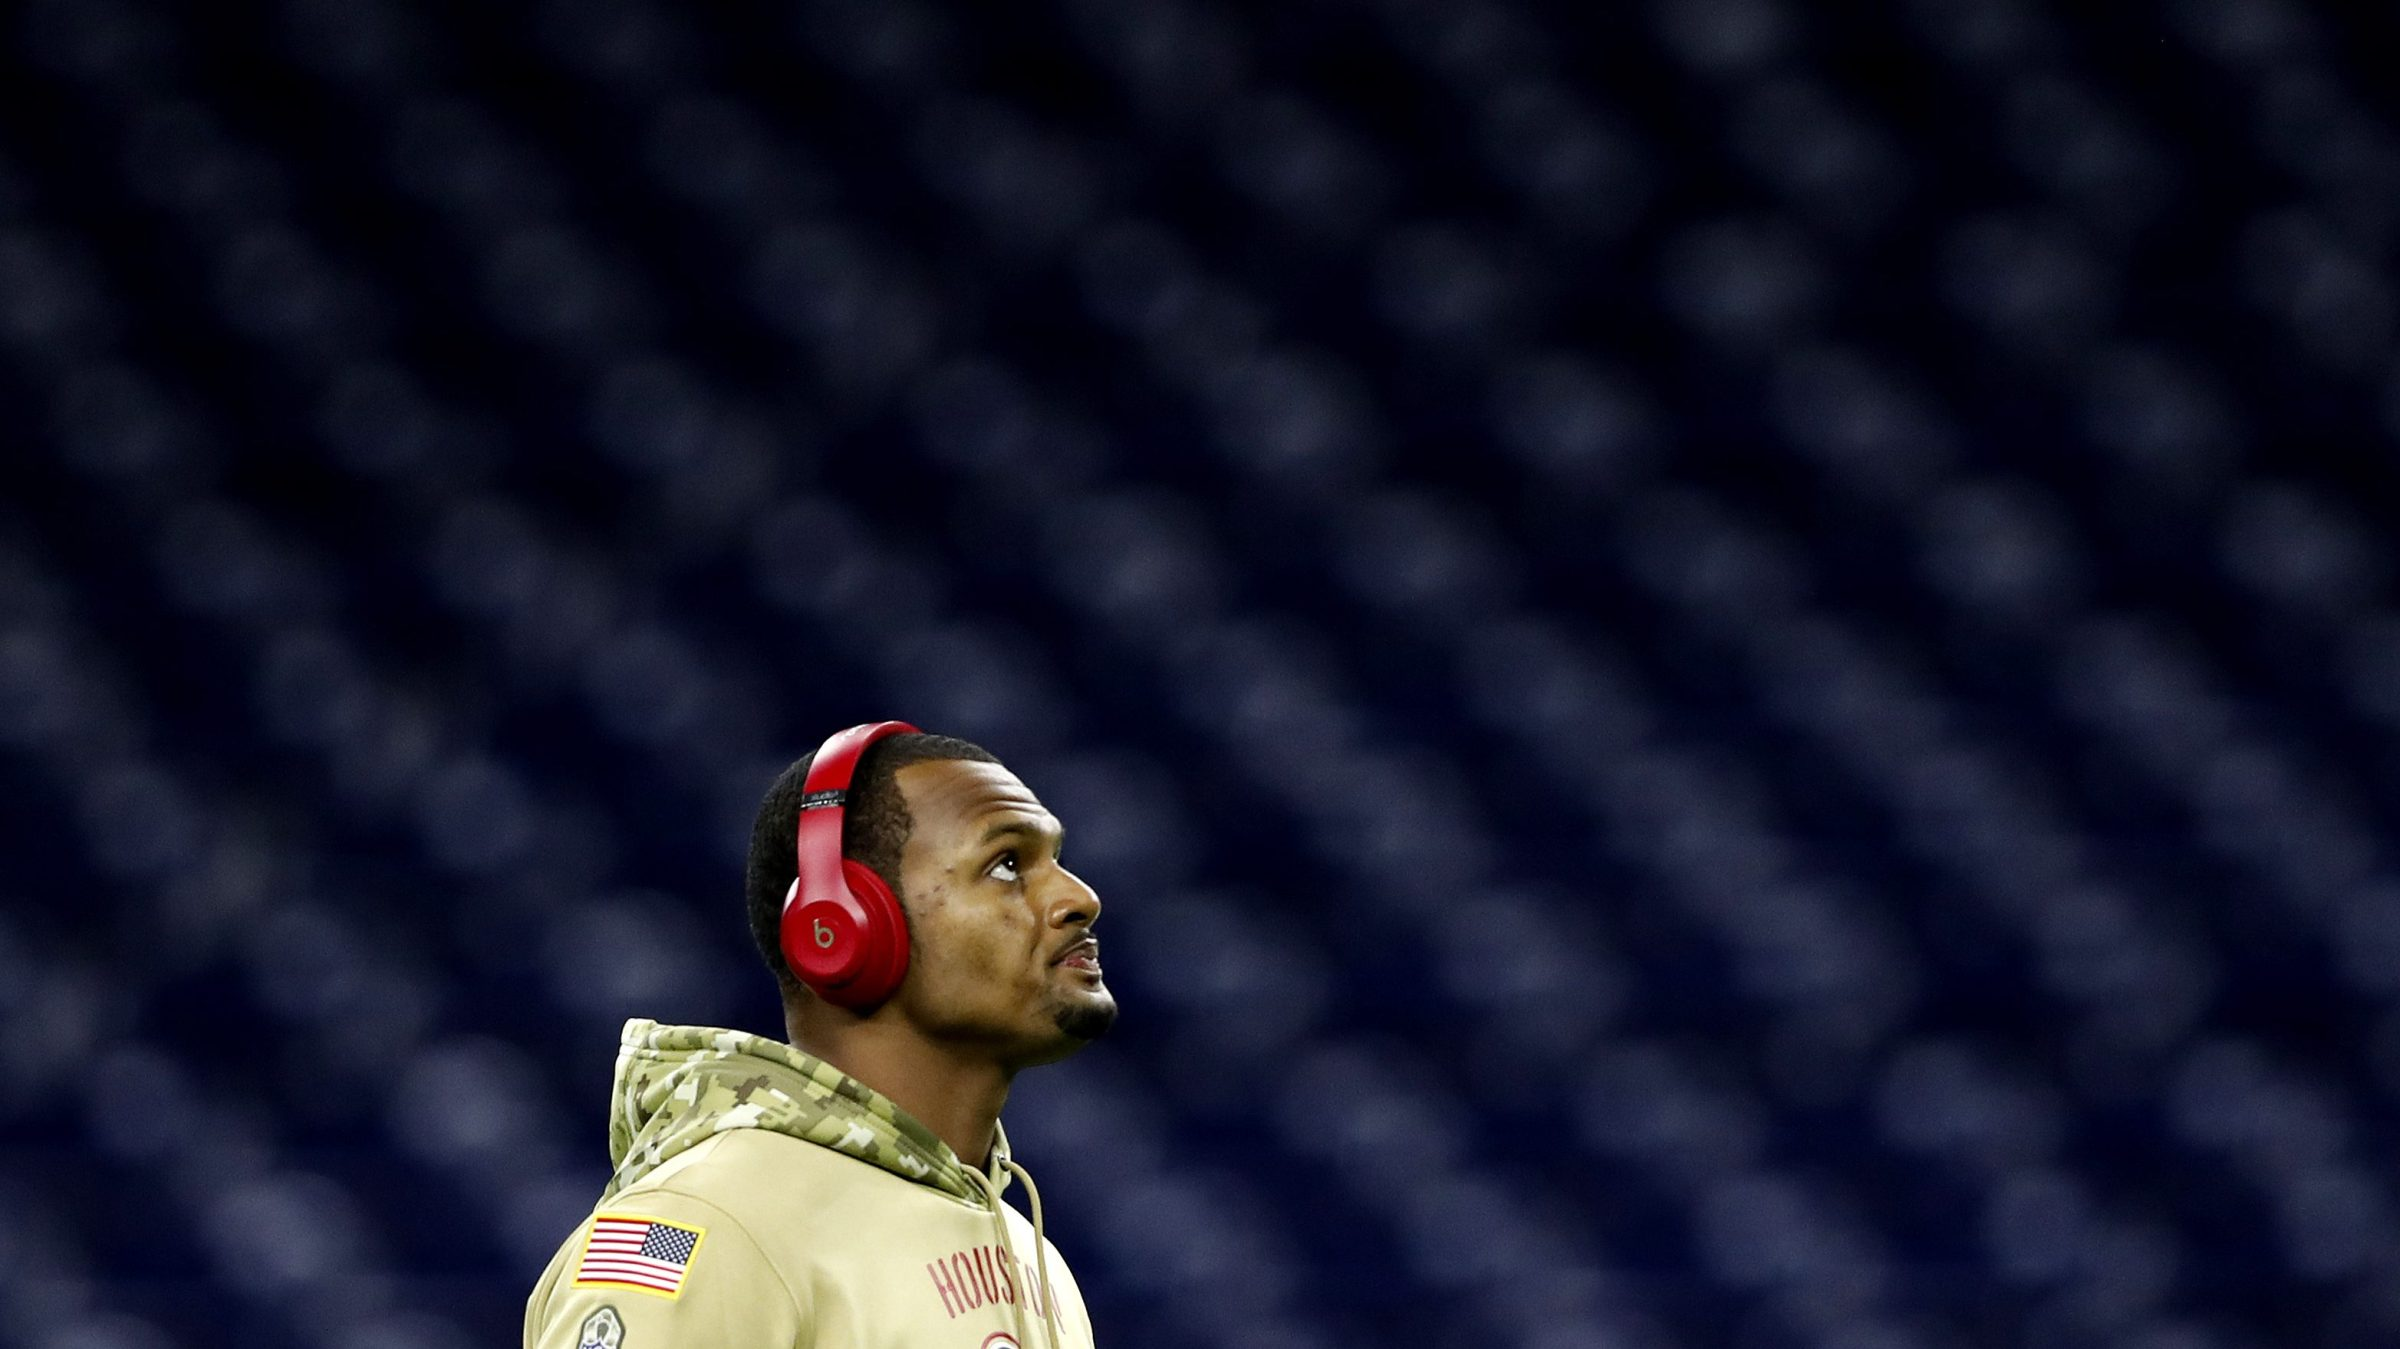 Deshaun Watson #4 of the Houston Texans warms up prior to the game against the New England Patriots at NRG Stadium on December 01, 2019 in Houston, Texas. He is in a green camo hoodie and wearing red headphone.